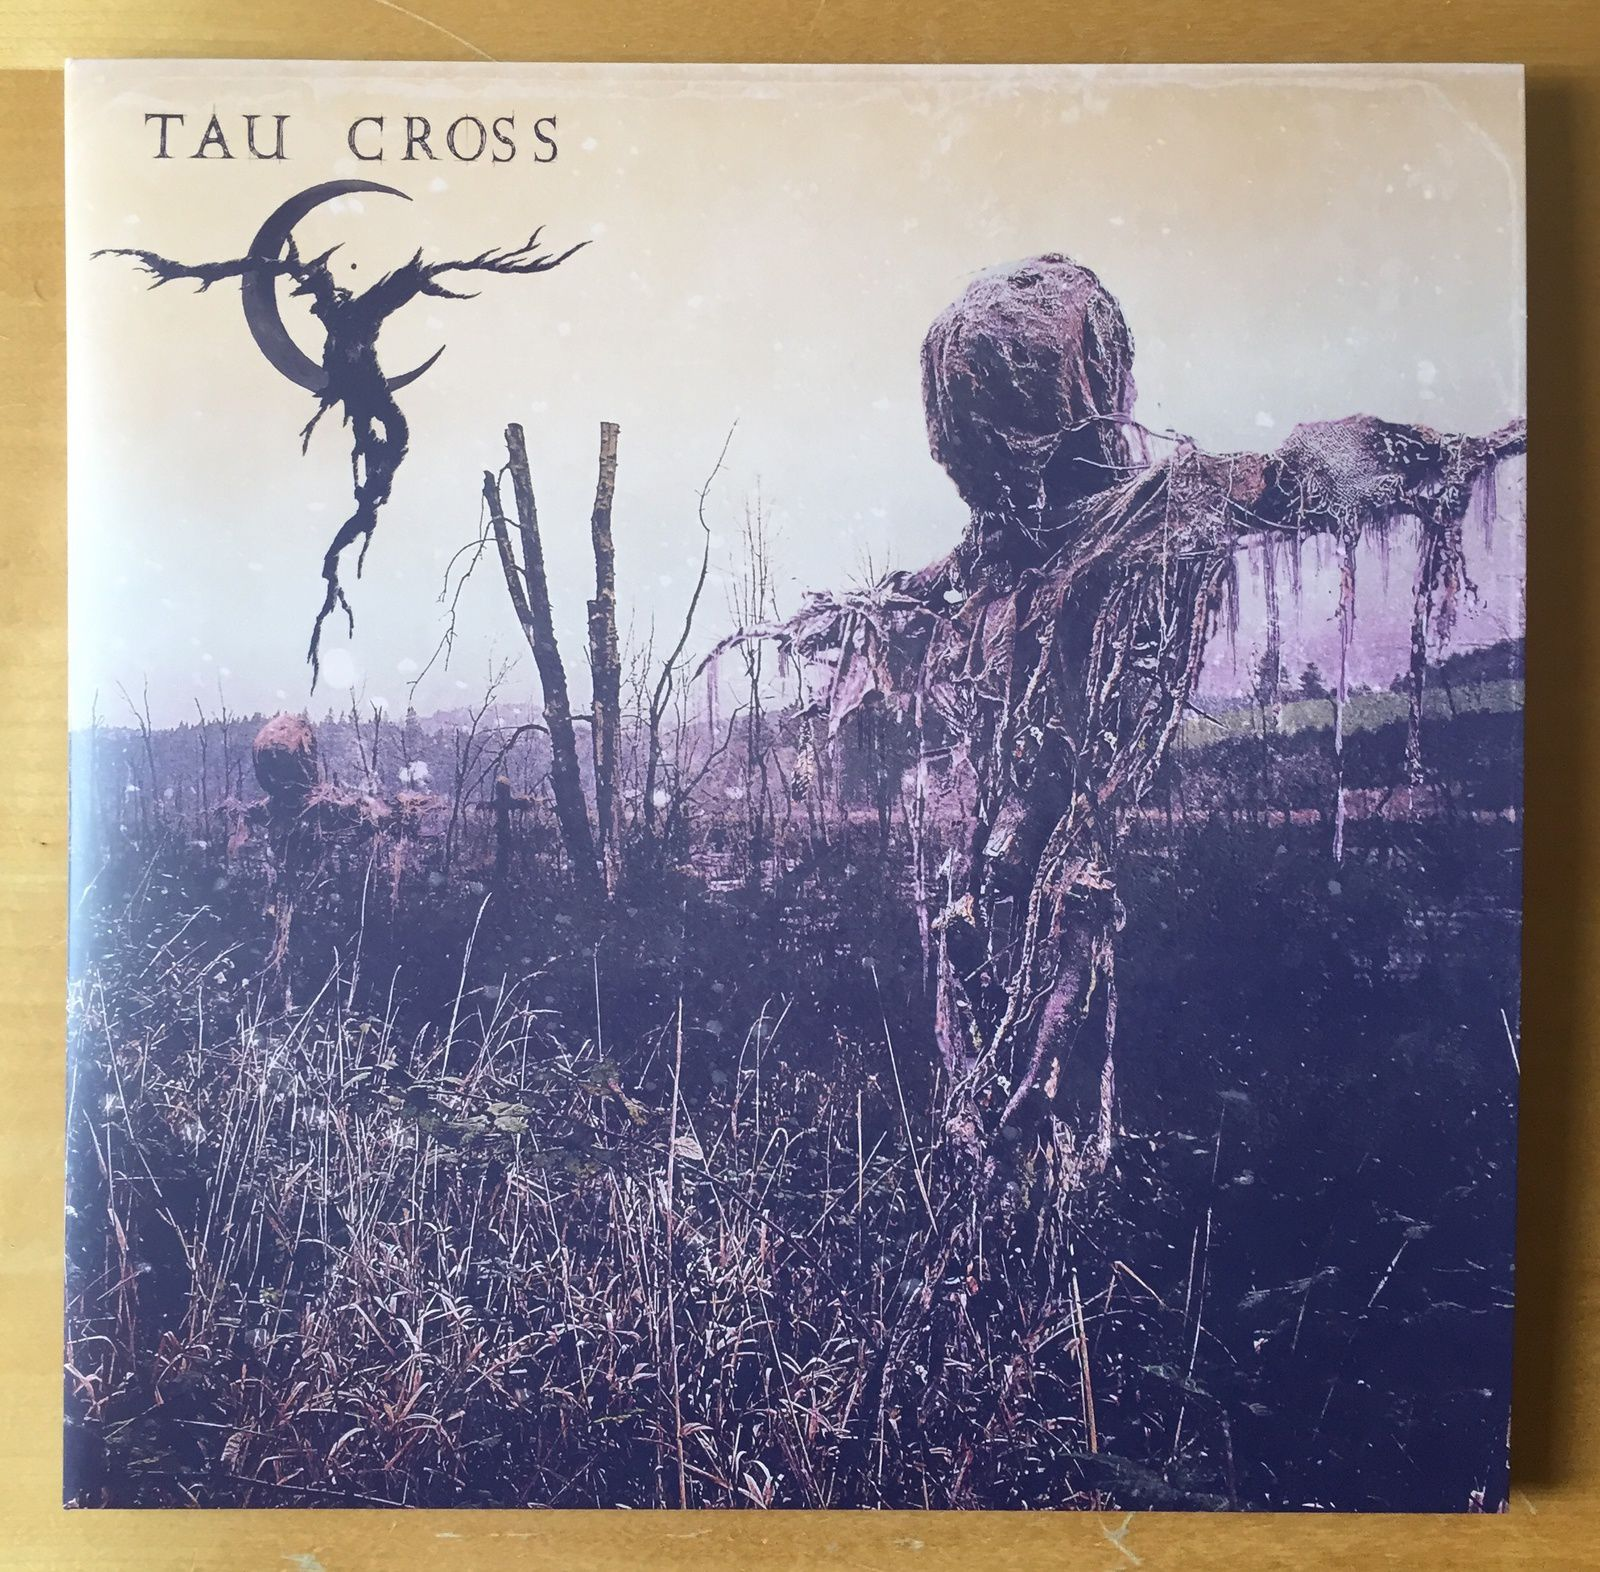 TAU CROSS also available as vinyl